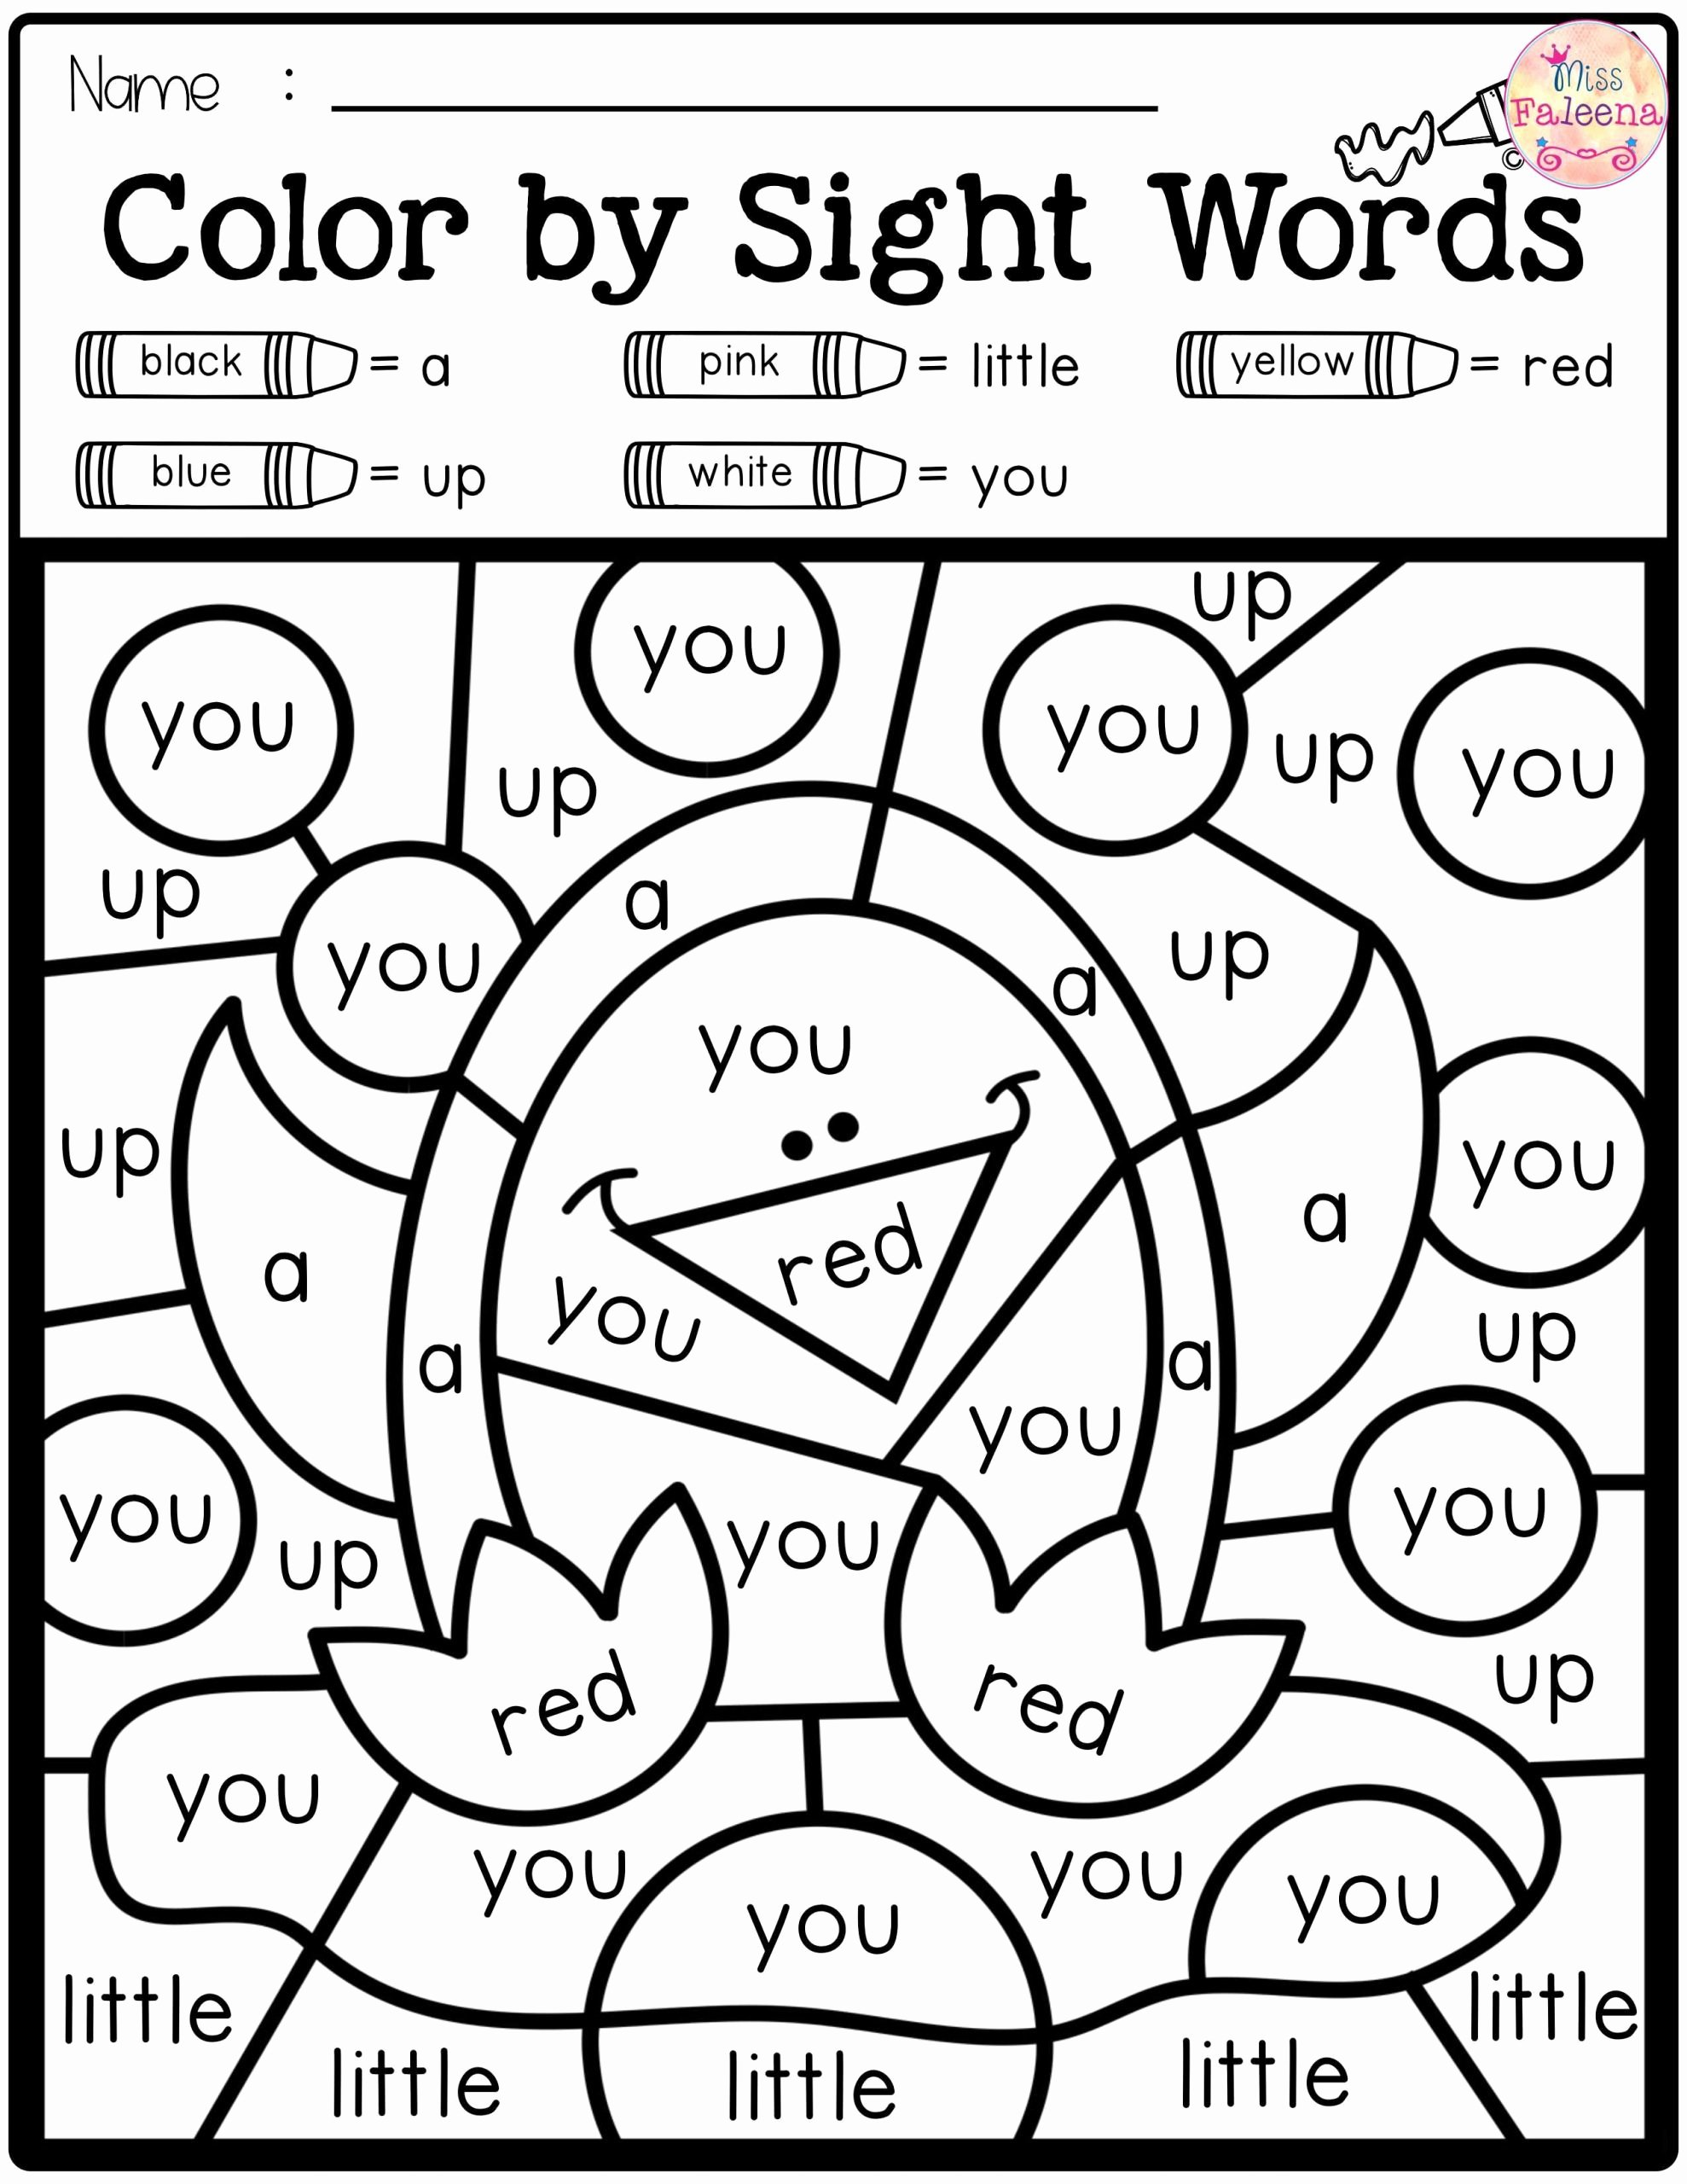 Color Word Worksheets for Kindergarten Inspirational Free Color by Code Sight Words Pre Primer with Word